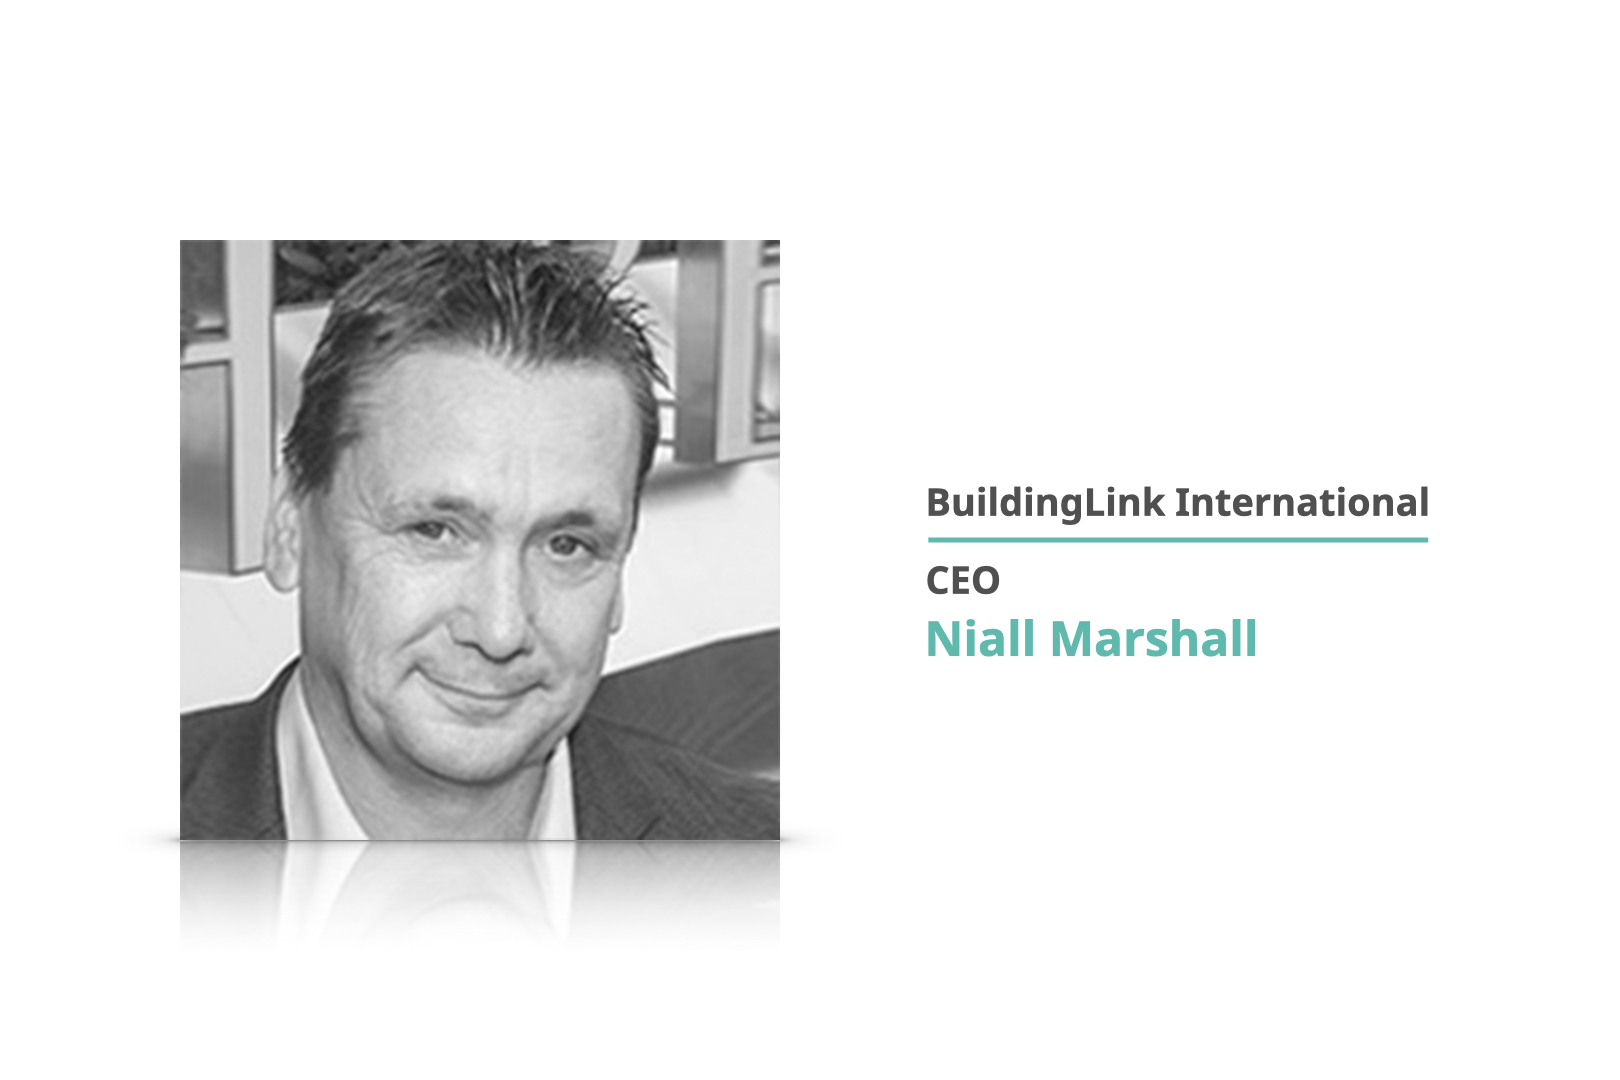 Behind the scenes of BuildingLink International with CEO Niall Marshall